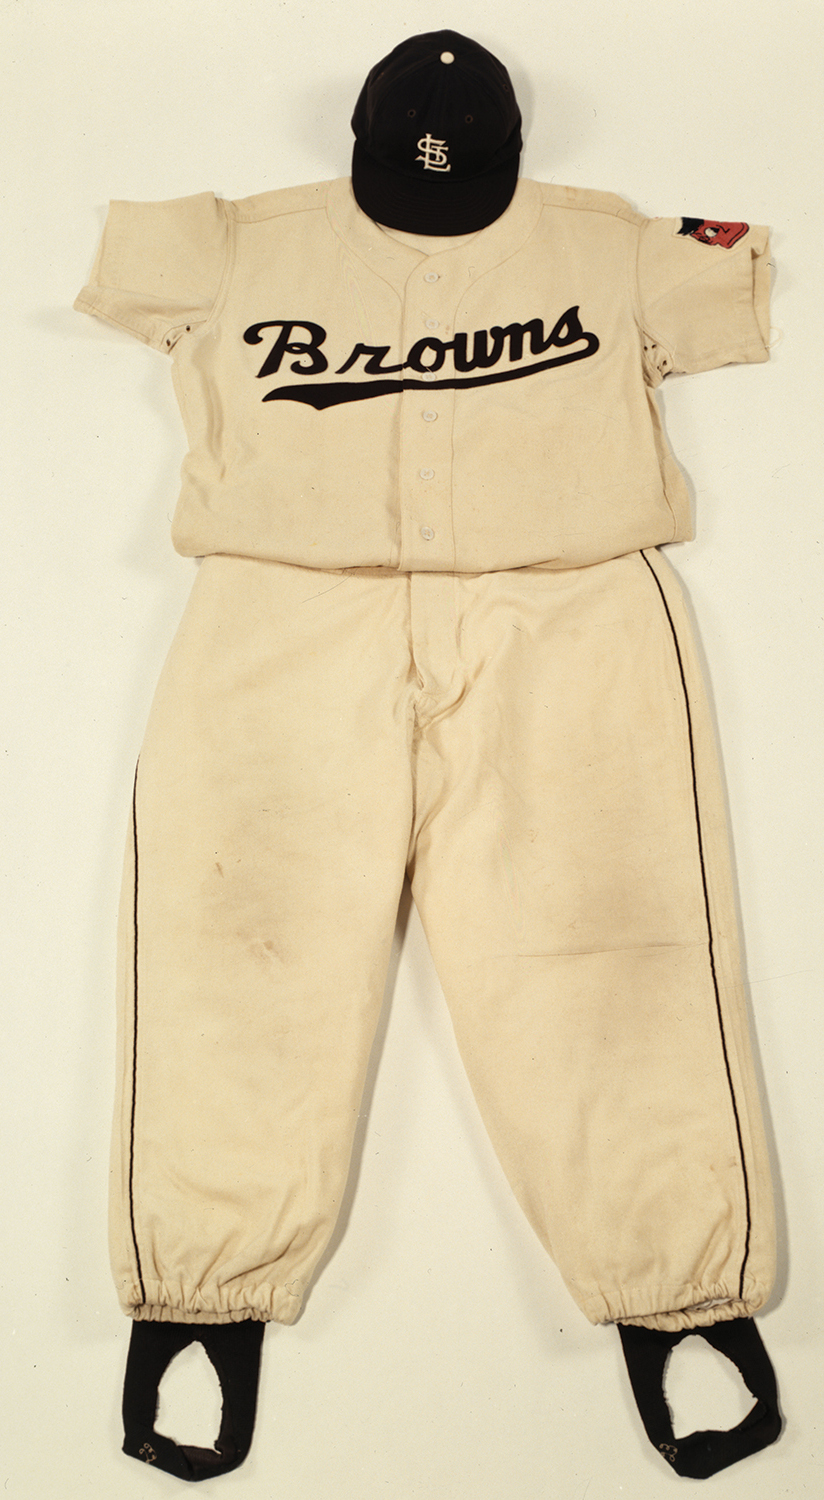 St. Louis Browns baseball uniform worn by right fielder Jim Delsing, 1952. Photograph by David Schultz, 1999. Missouri History Museum.